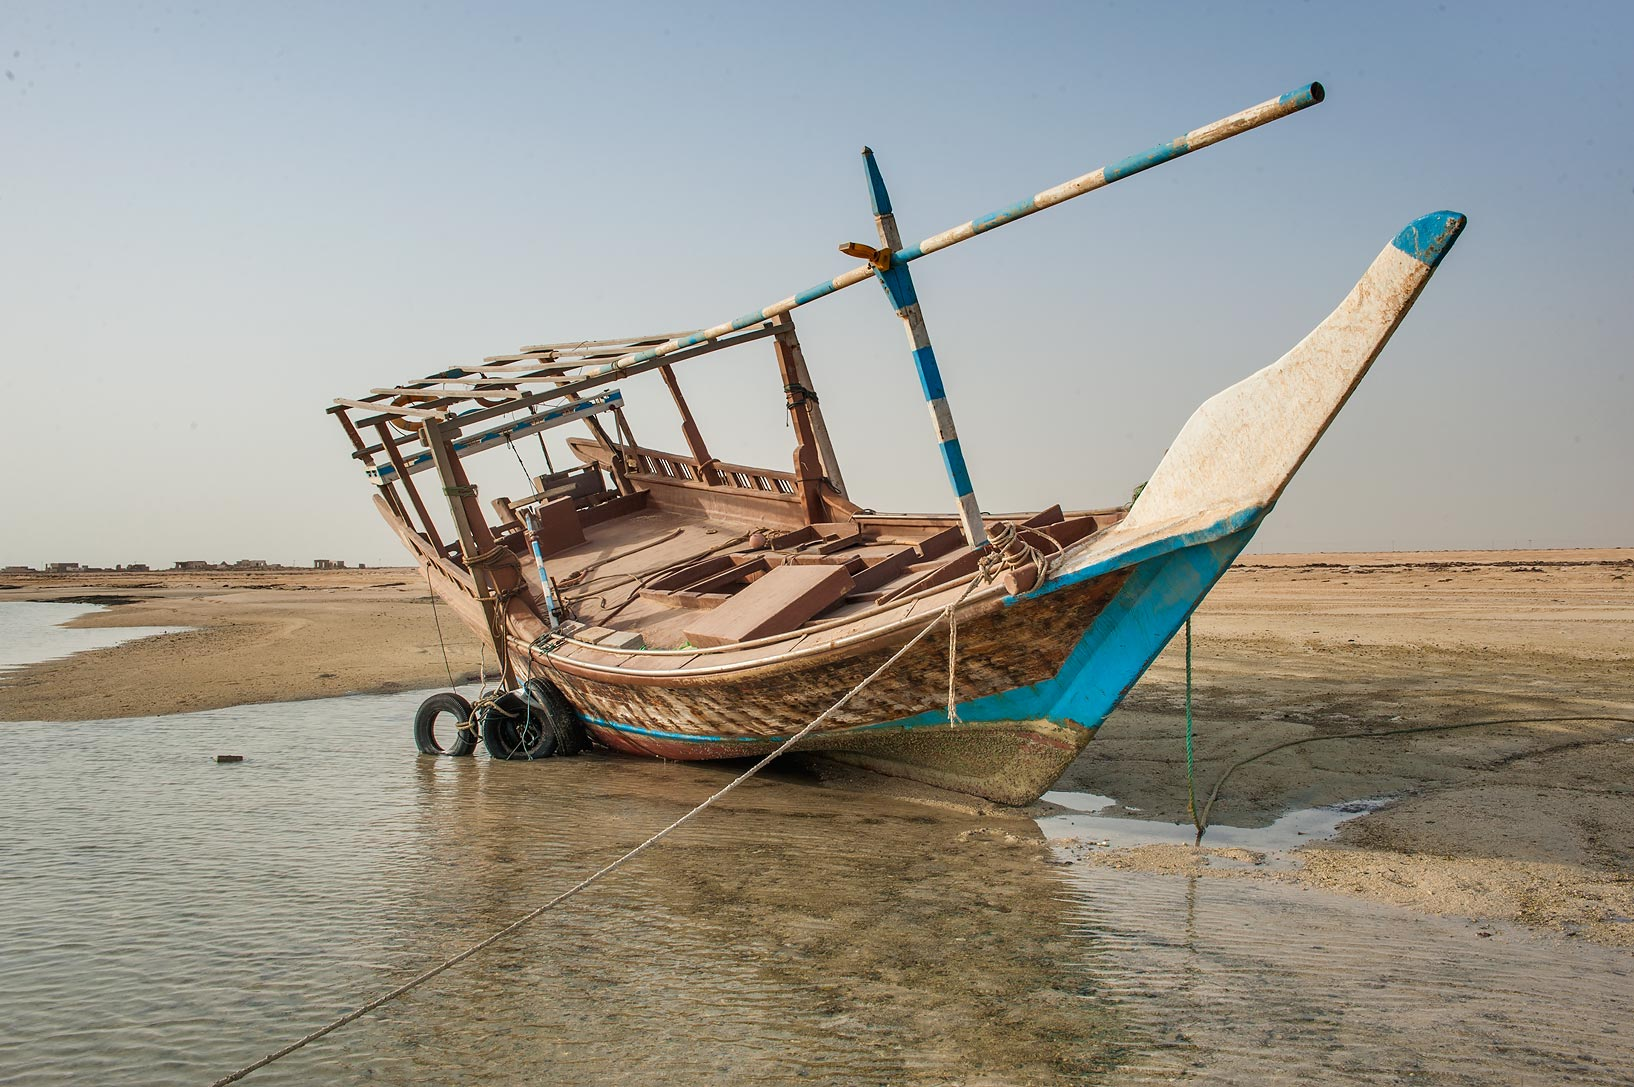 Beached dhow fishing boat in Al Mafyar (Mafjar) area on northern coast (Al Shamal). Qatar